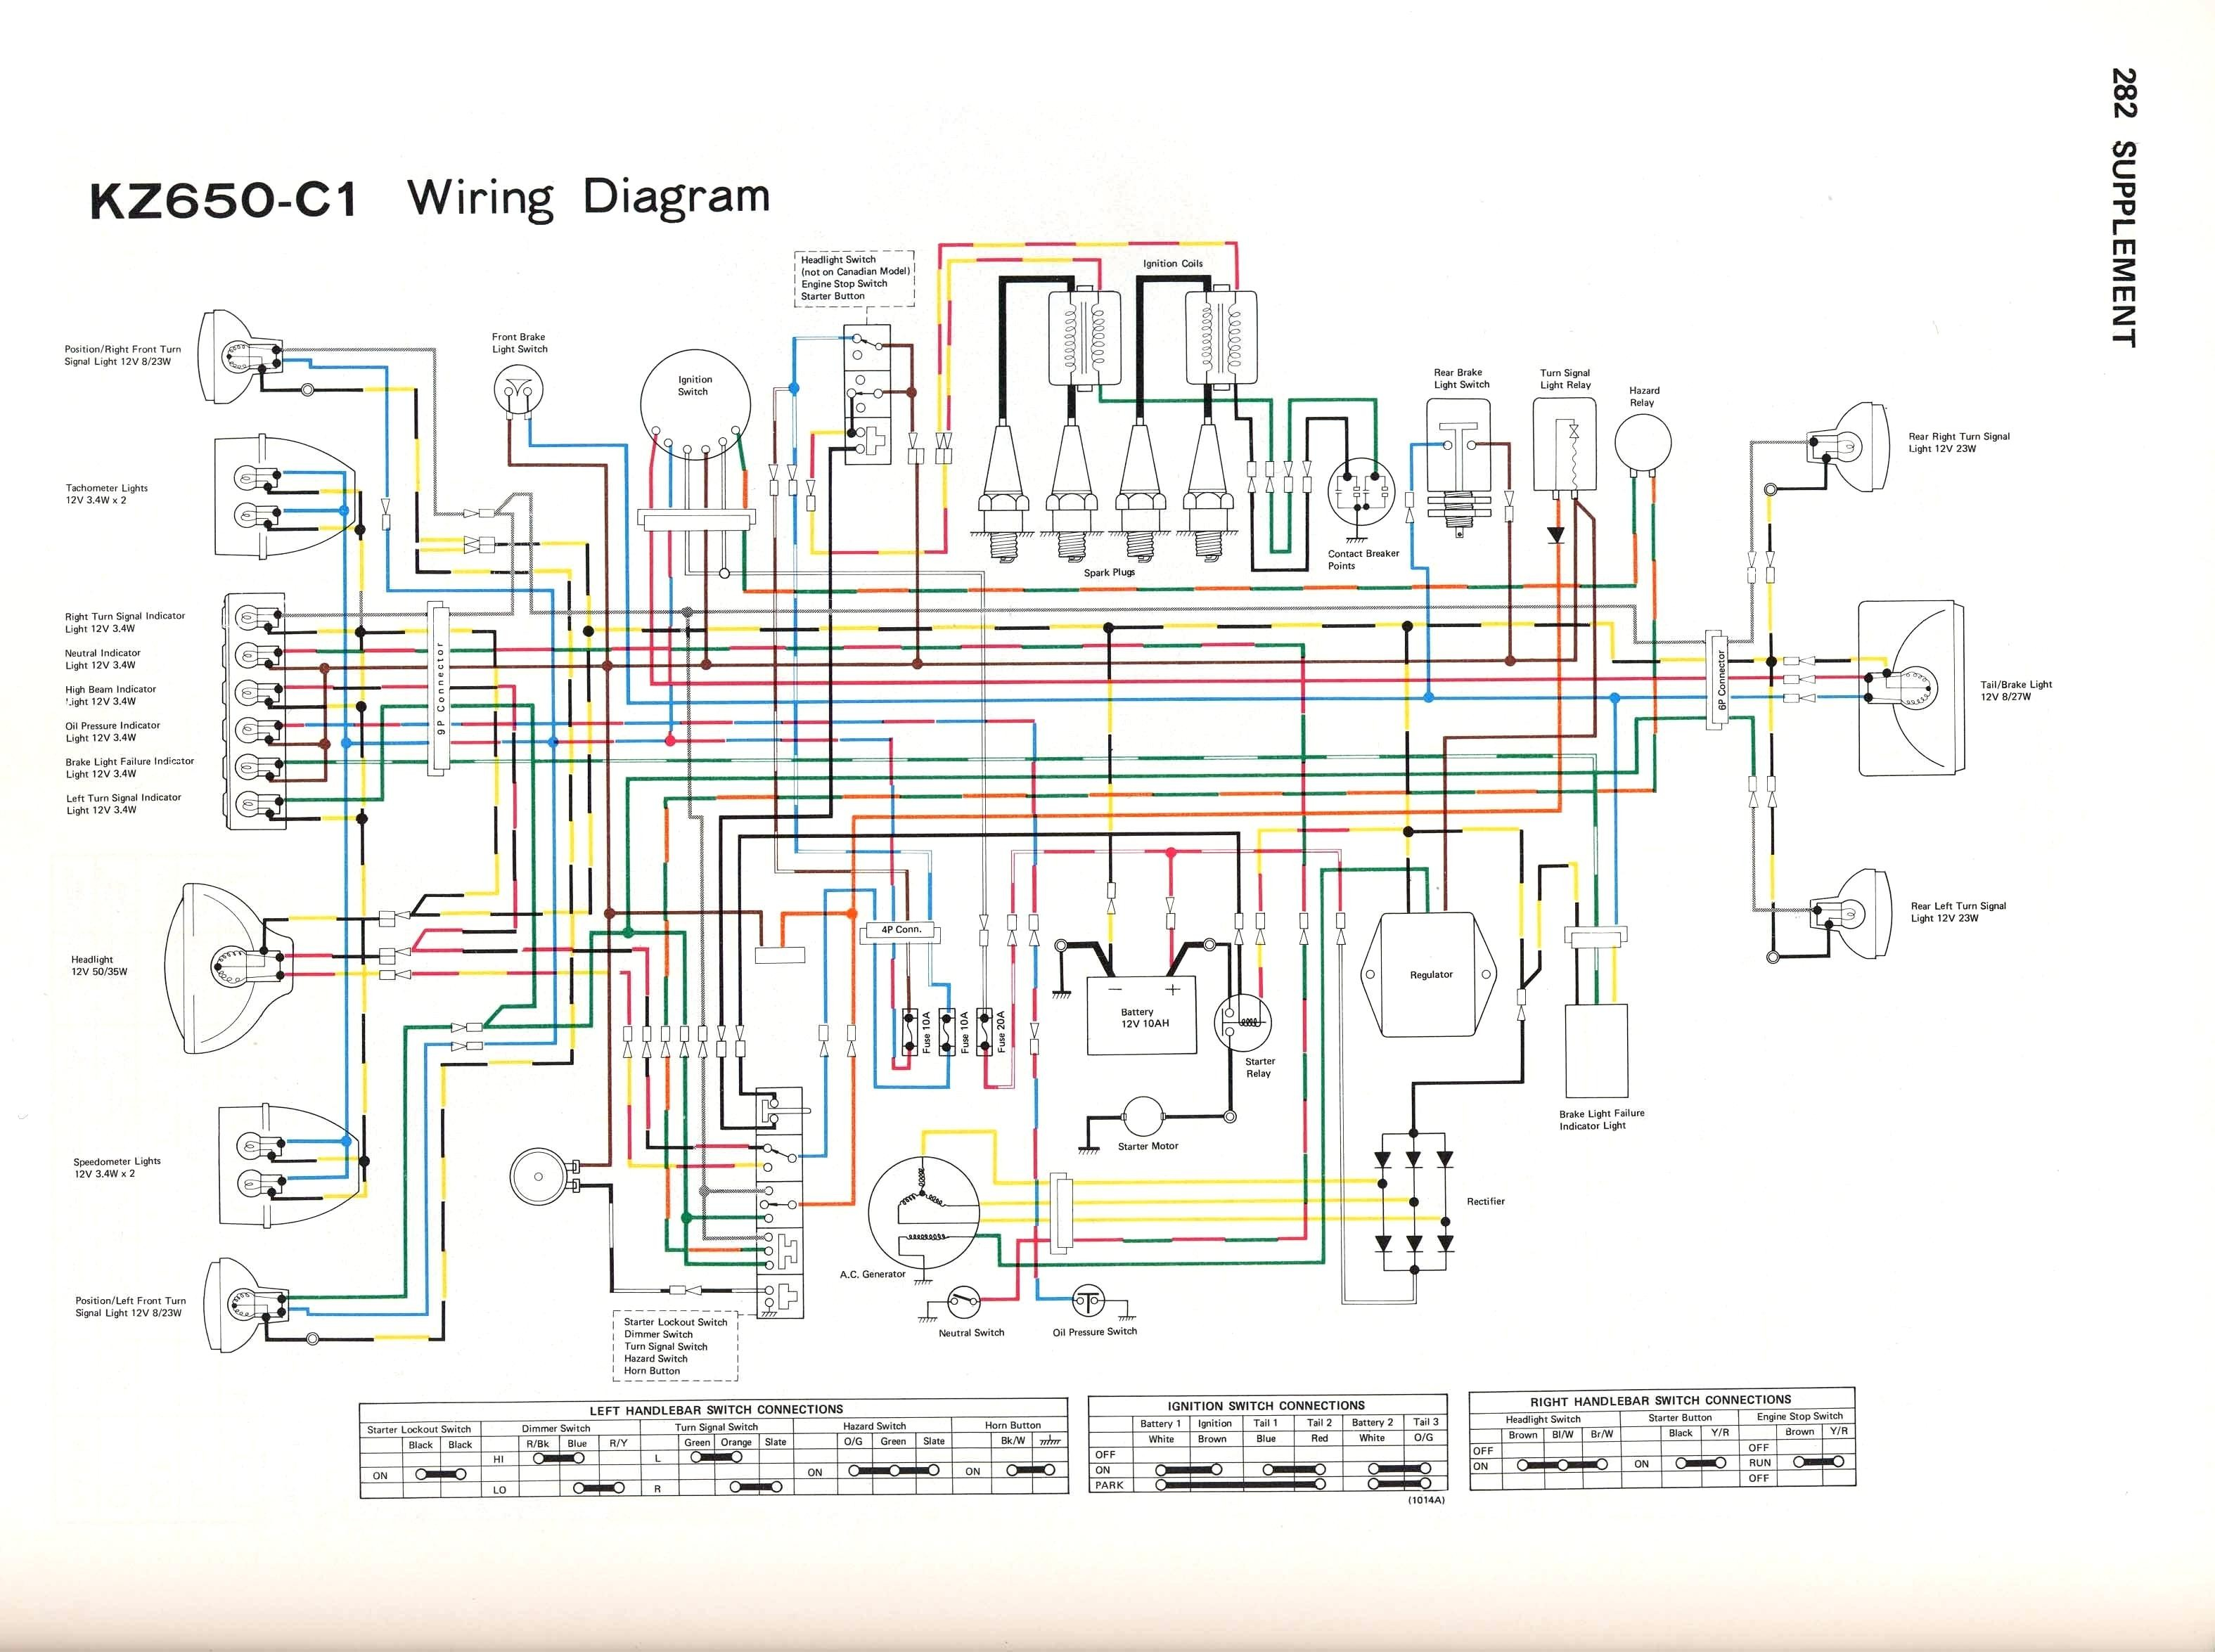 1986 Kawasaki Zl600a Wiring Schematic Tech Tips Diagrams 1995 Bayou Diagram Library Rh 88 Codingcommunity De Mule Harness Electrical